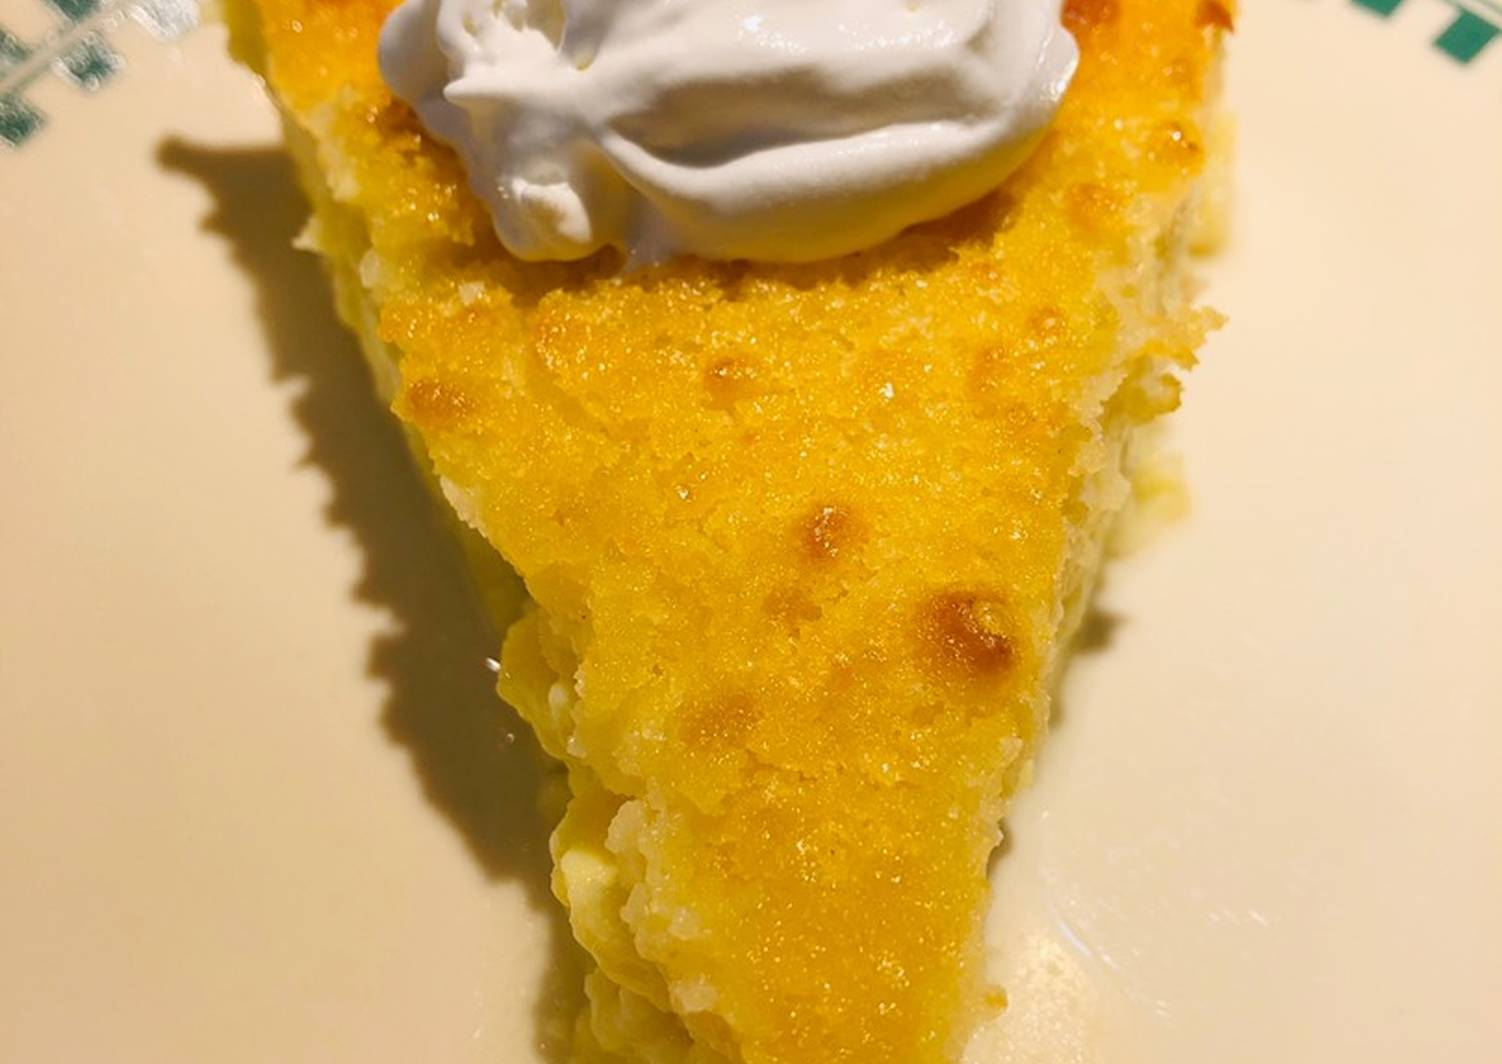 https://img-global.cpcdn.com/recipes/6df10d394b9f6298/1502x1064cq70/bisquick-lemon-%F0%9F%8D%8B-pie-%F0%9F%A5%A7-recipe-main-photo.jpg